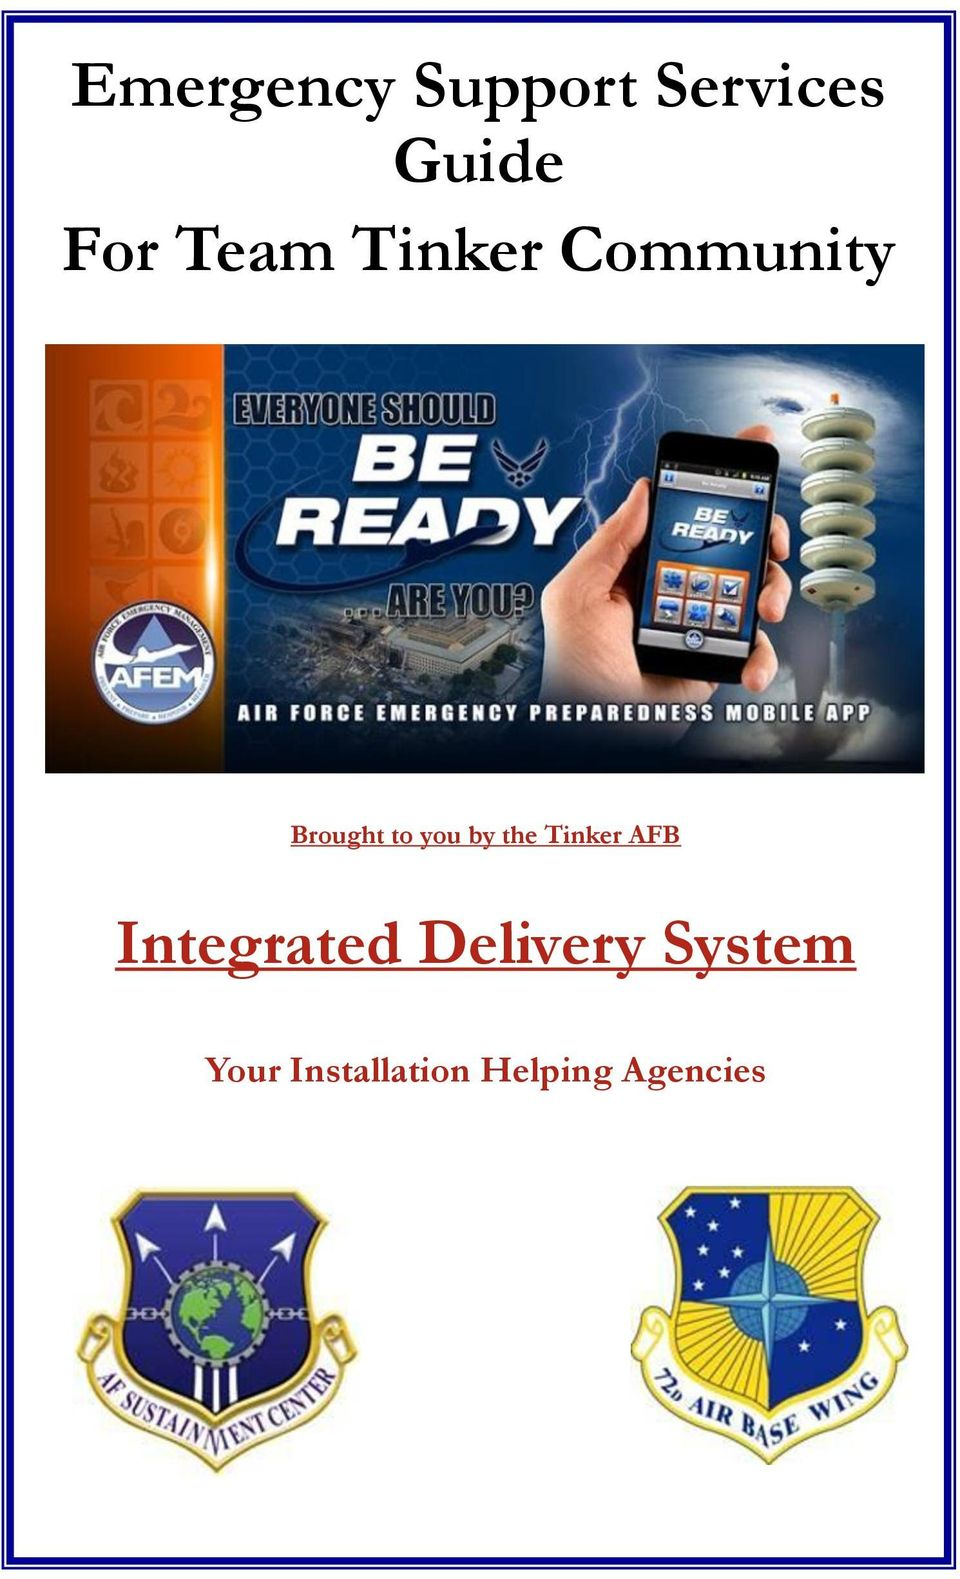 by the Tinker AFB Integrated Delivery